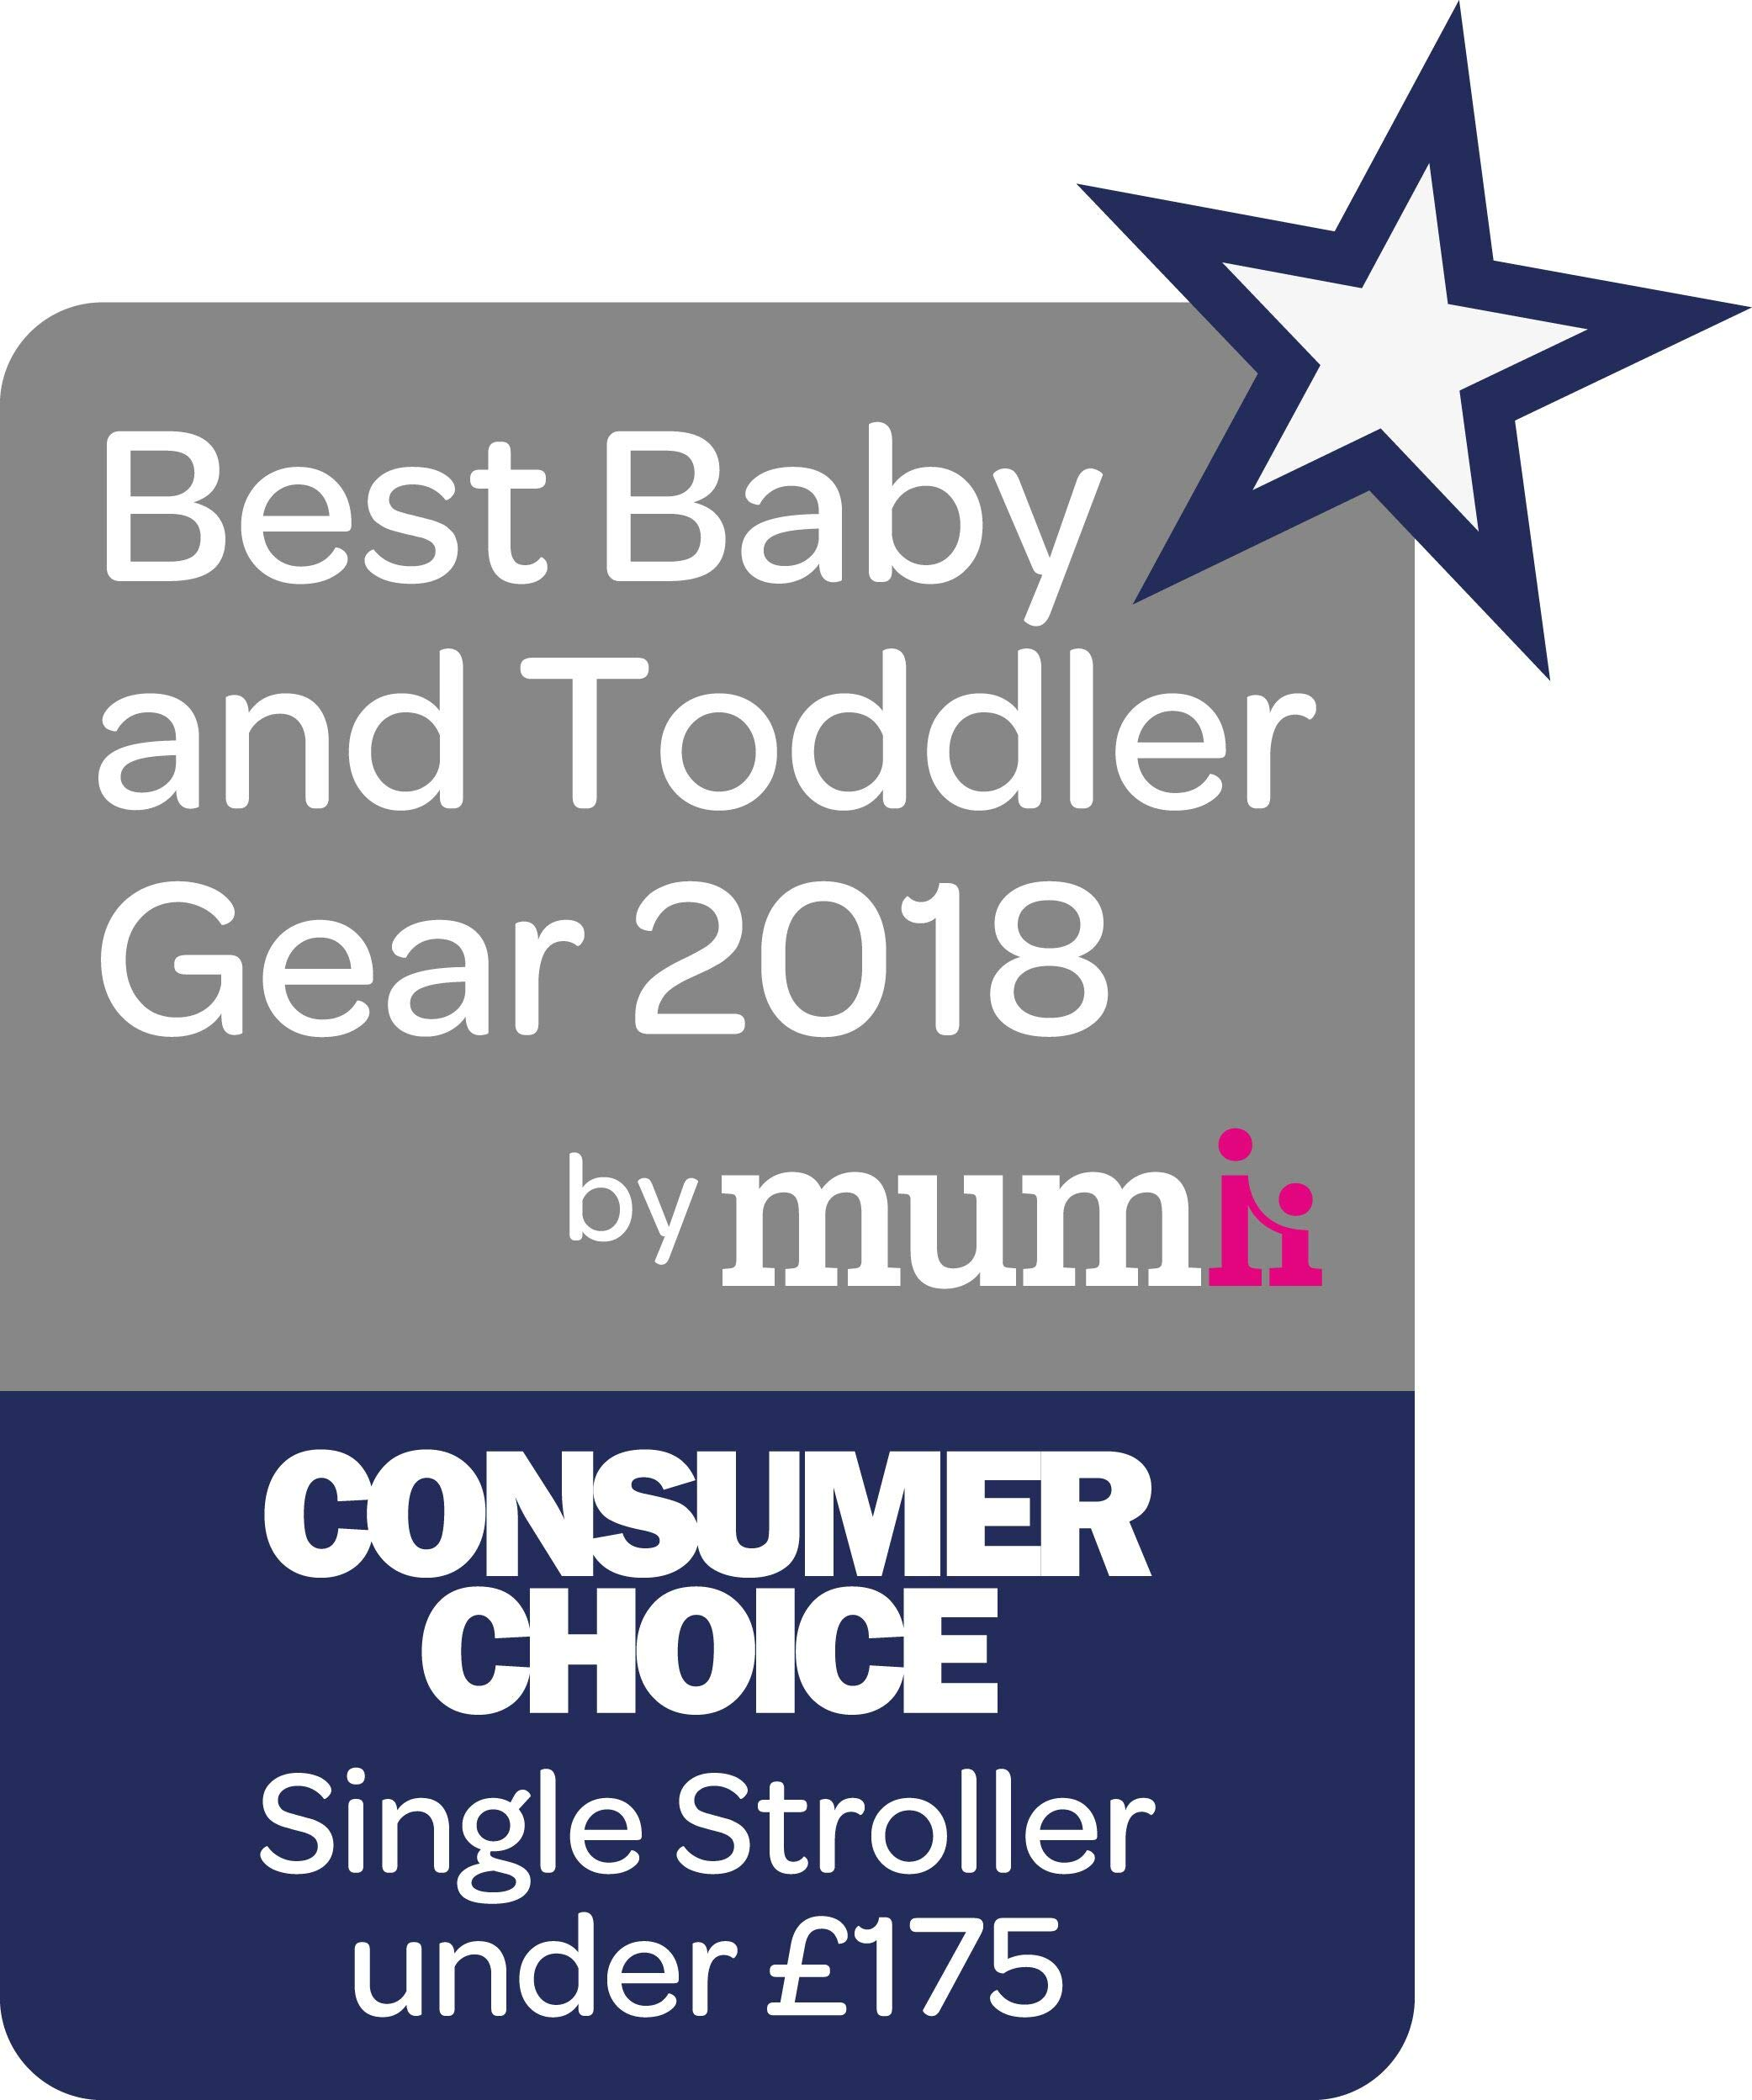 Ickle Bubba Baby Discovery Stroller| Lightweight Stroller Pushchair | Compact Fold Technology for Easy Transport and Storage | UPF 50+ Extendable Hood | Grey/Silver Ickle Bubba ONE-HANDED 3 POSITION SEAT RECLINE: Baby stroller suitable from 6 months to 22kg. 4 years old; features rain cover UPF 50+ RATED ADJUSTABLE HOOD: Includes a peekaboo window to keep an eye on the little one; extendable hood-UPF rated-to protect against the sun's harmful rays and inclement weather LIGHTWEIGHT DESIGN WITH COMPACT FOLD TECHNOLOGY: Easy to transport, aluminum frame is lightweight and portable-weighs only 7kg; folds compact for storage in small places; carry strap and leather shoulder pad included 10